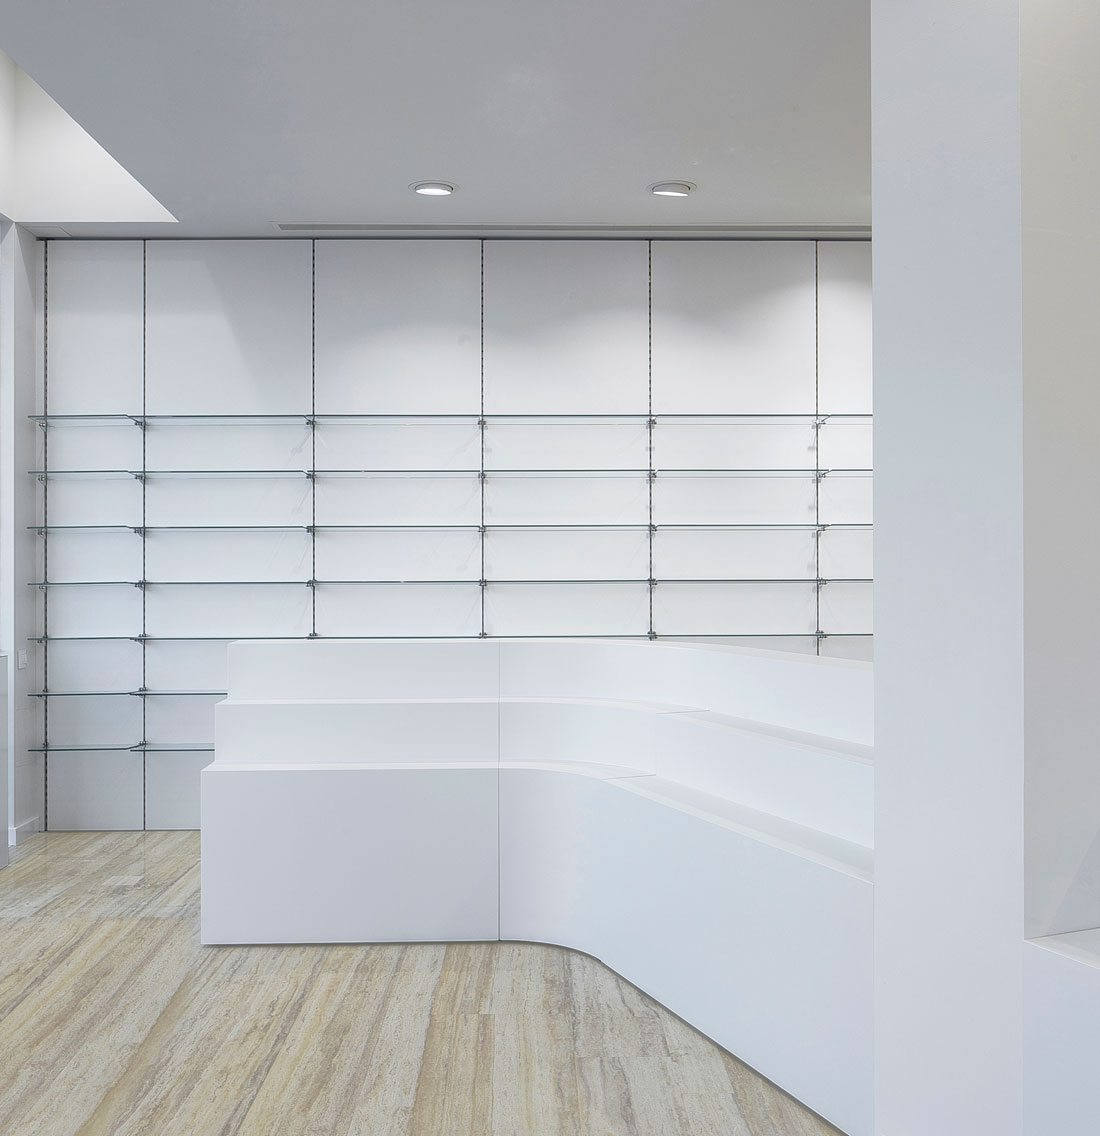 La nucia Pharmacy-interior-shelving-minimal-organic